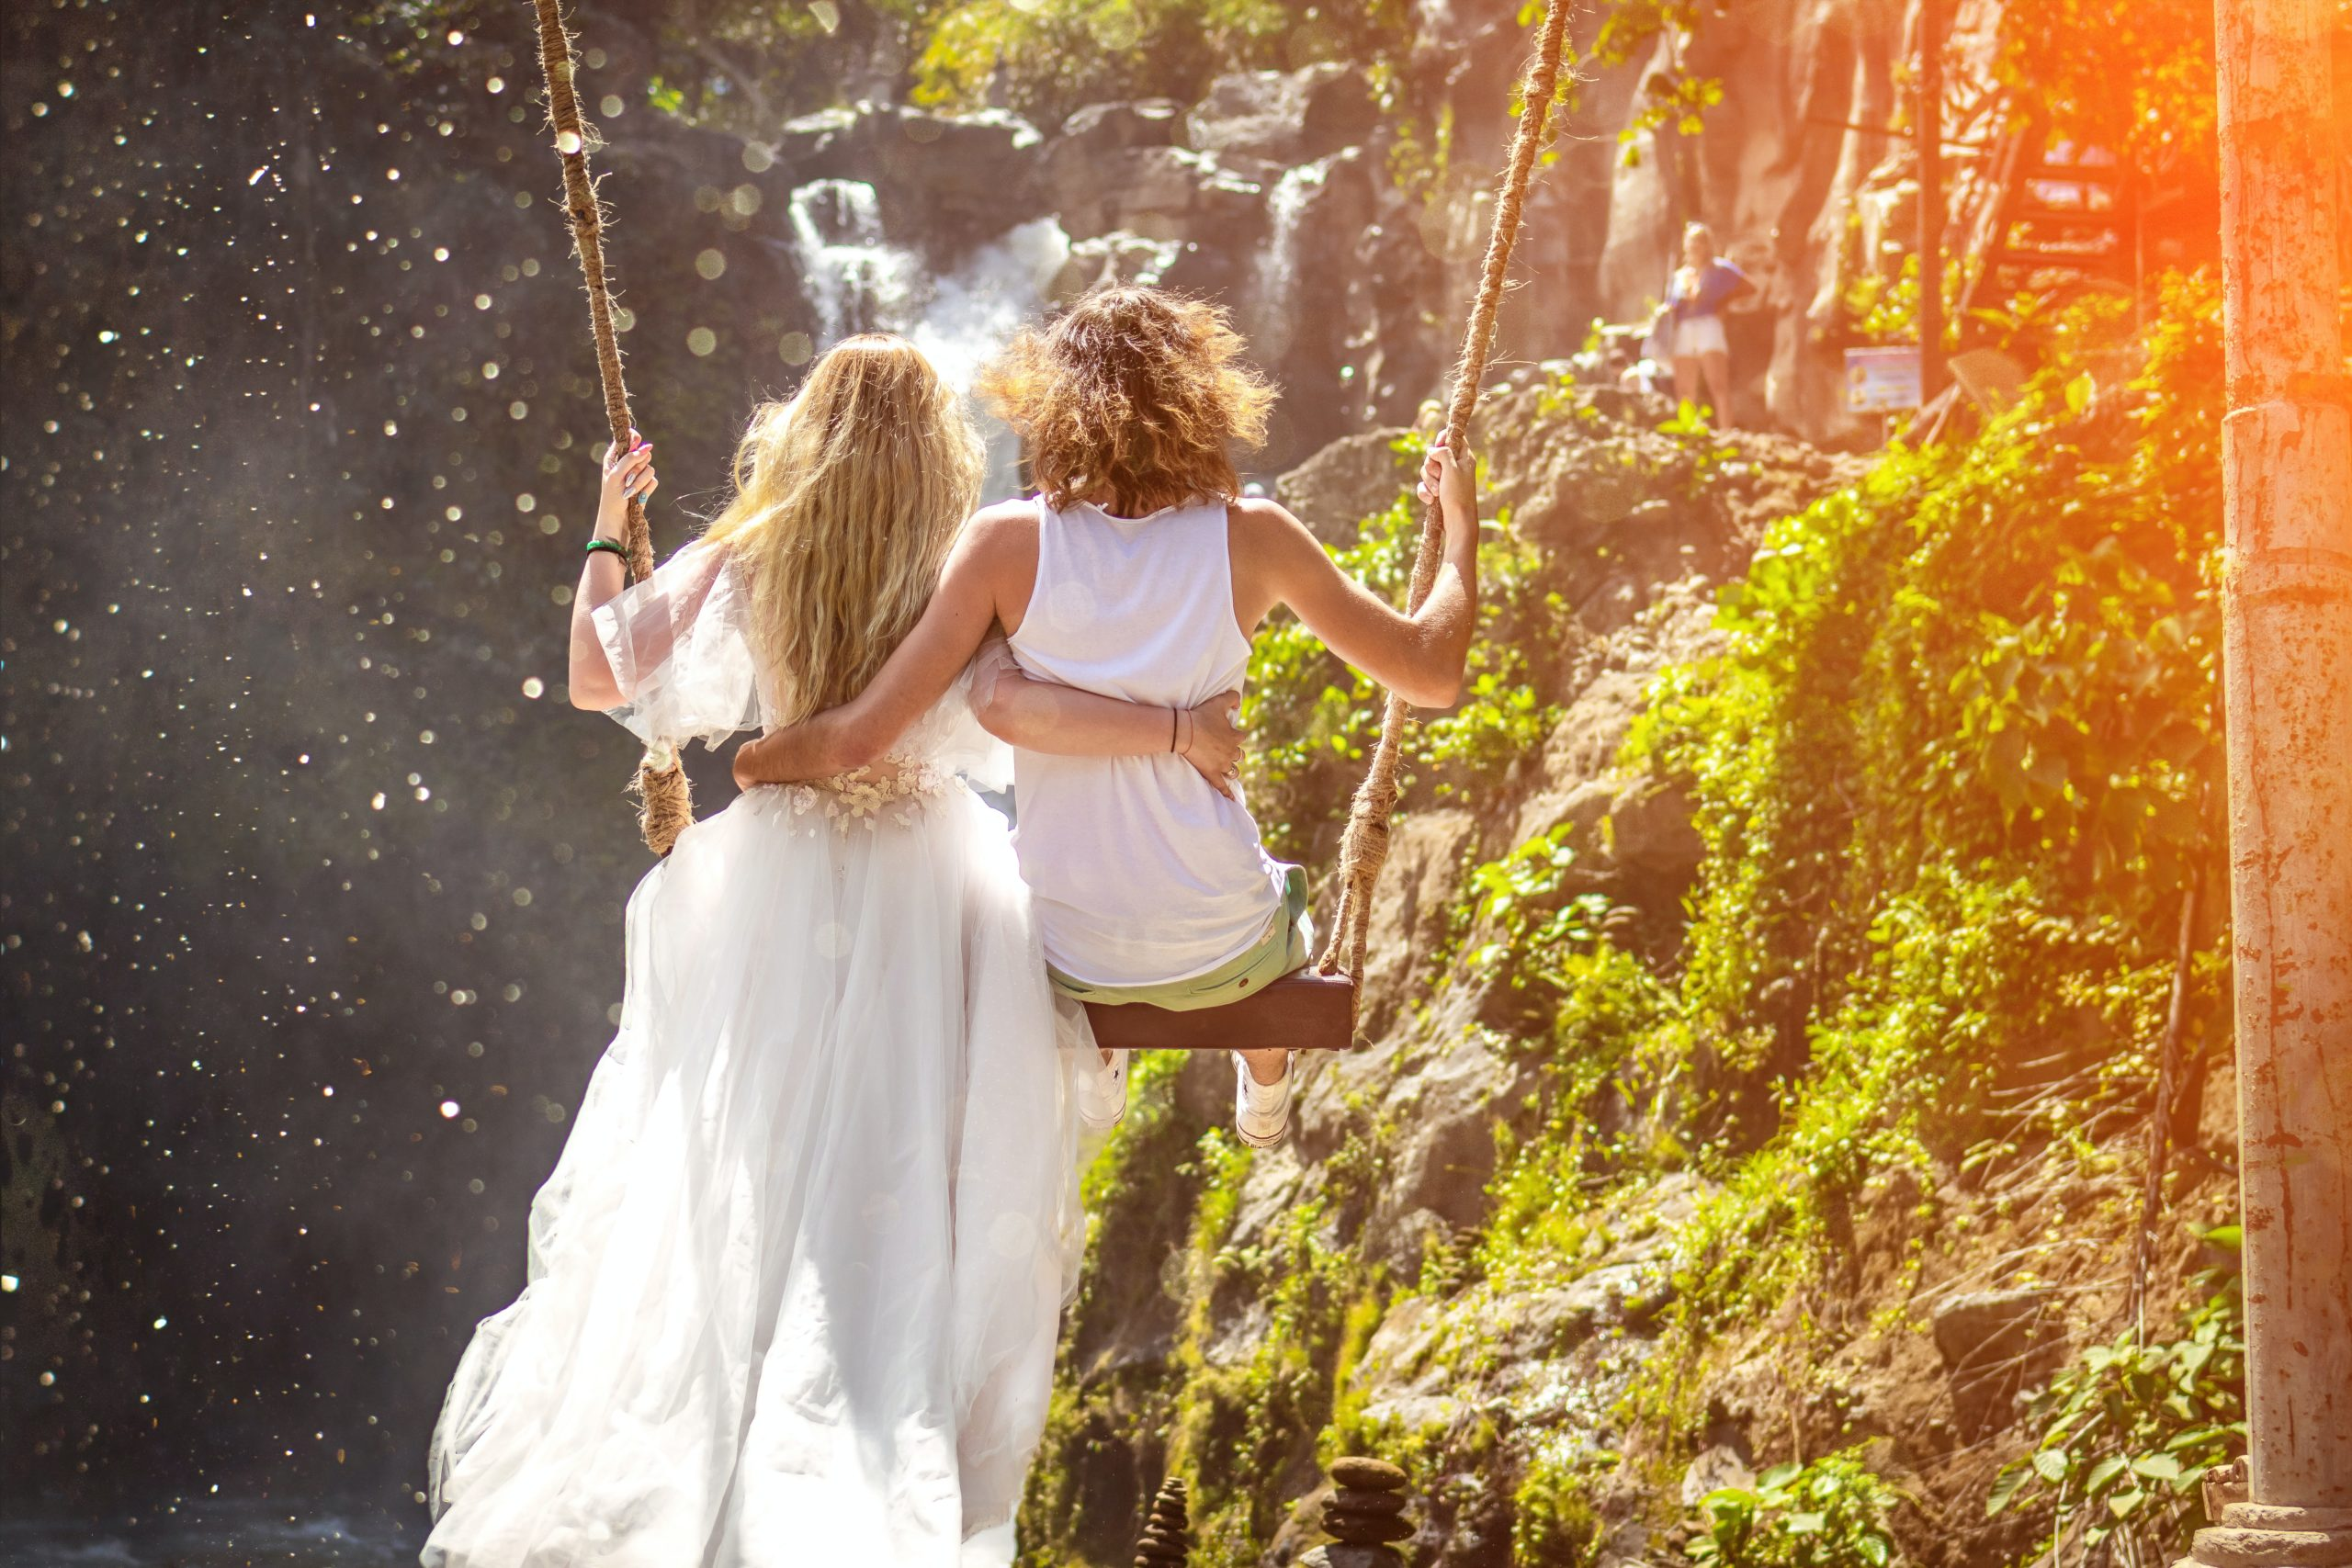 woman-and-woman-riding-wooden-swing-in-front-of-rock-1459583